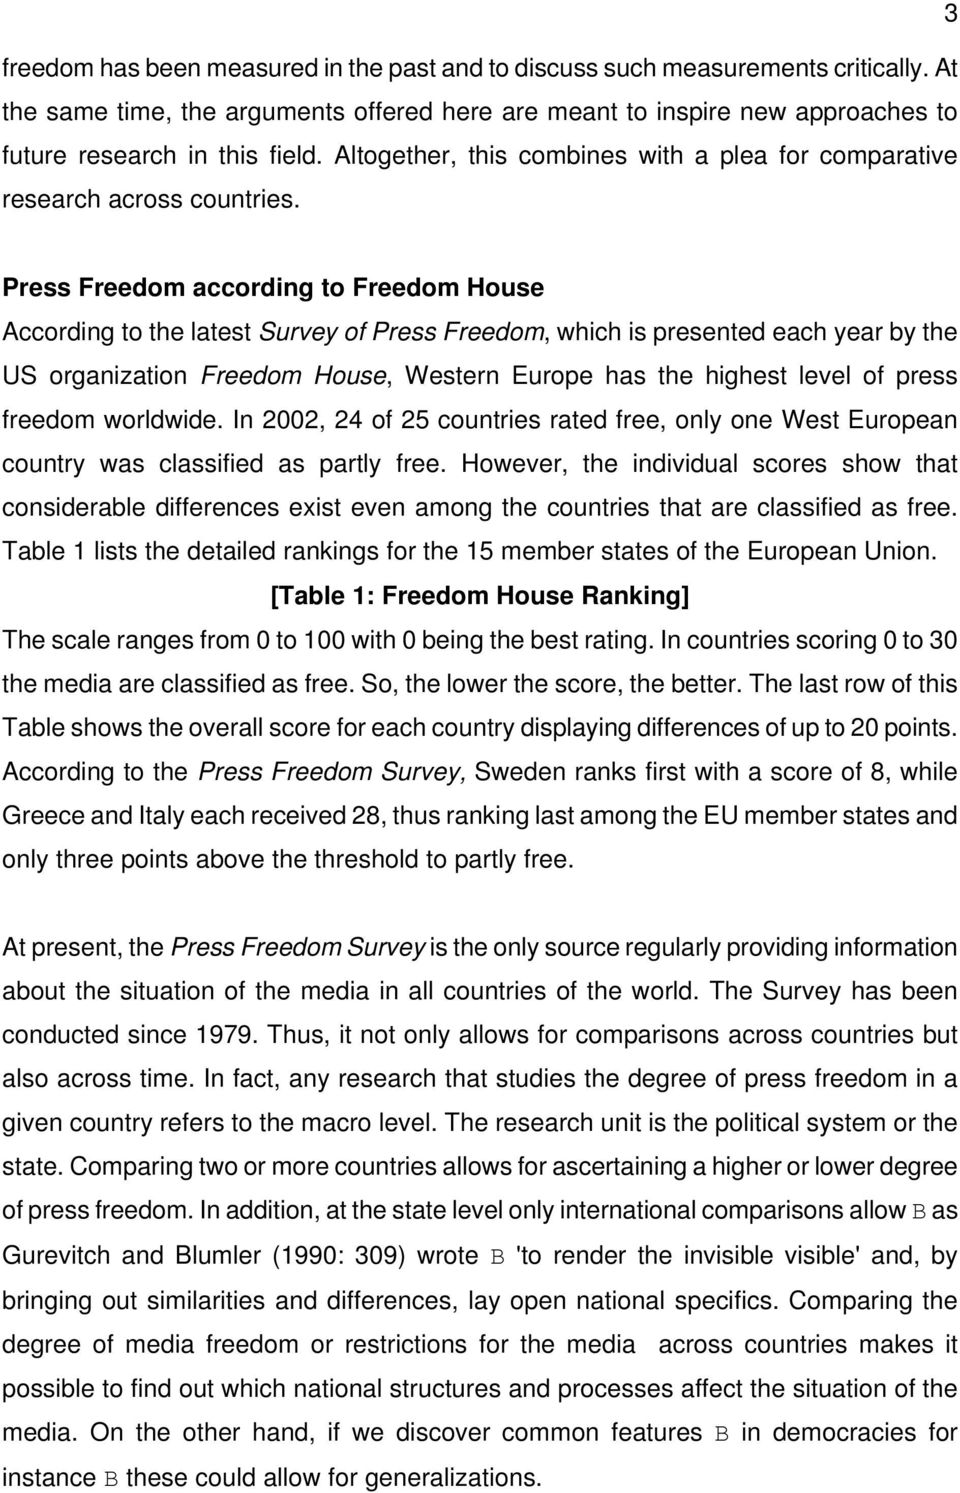 Press Freedom according to Freedom House According to the latest Survey of Press Freedom, which is presented each year by the US organization Freedom House, Western Europe has the highest level of